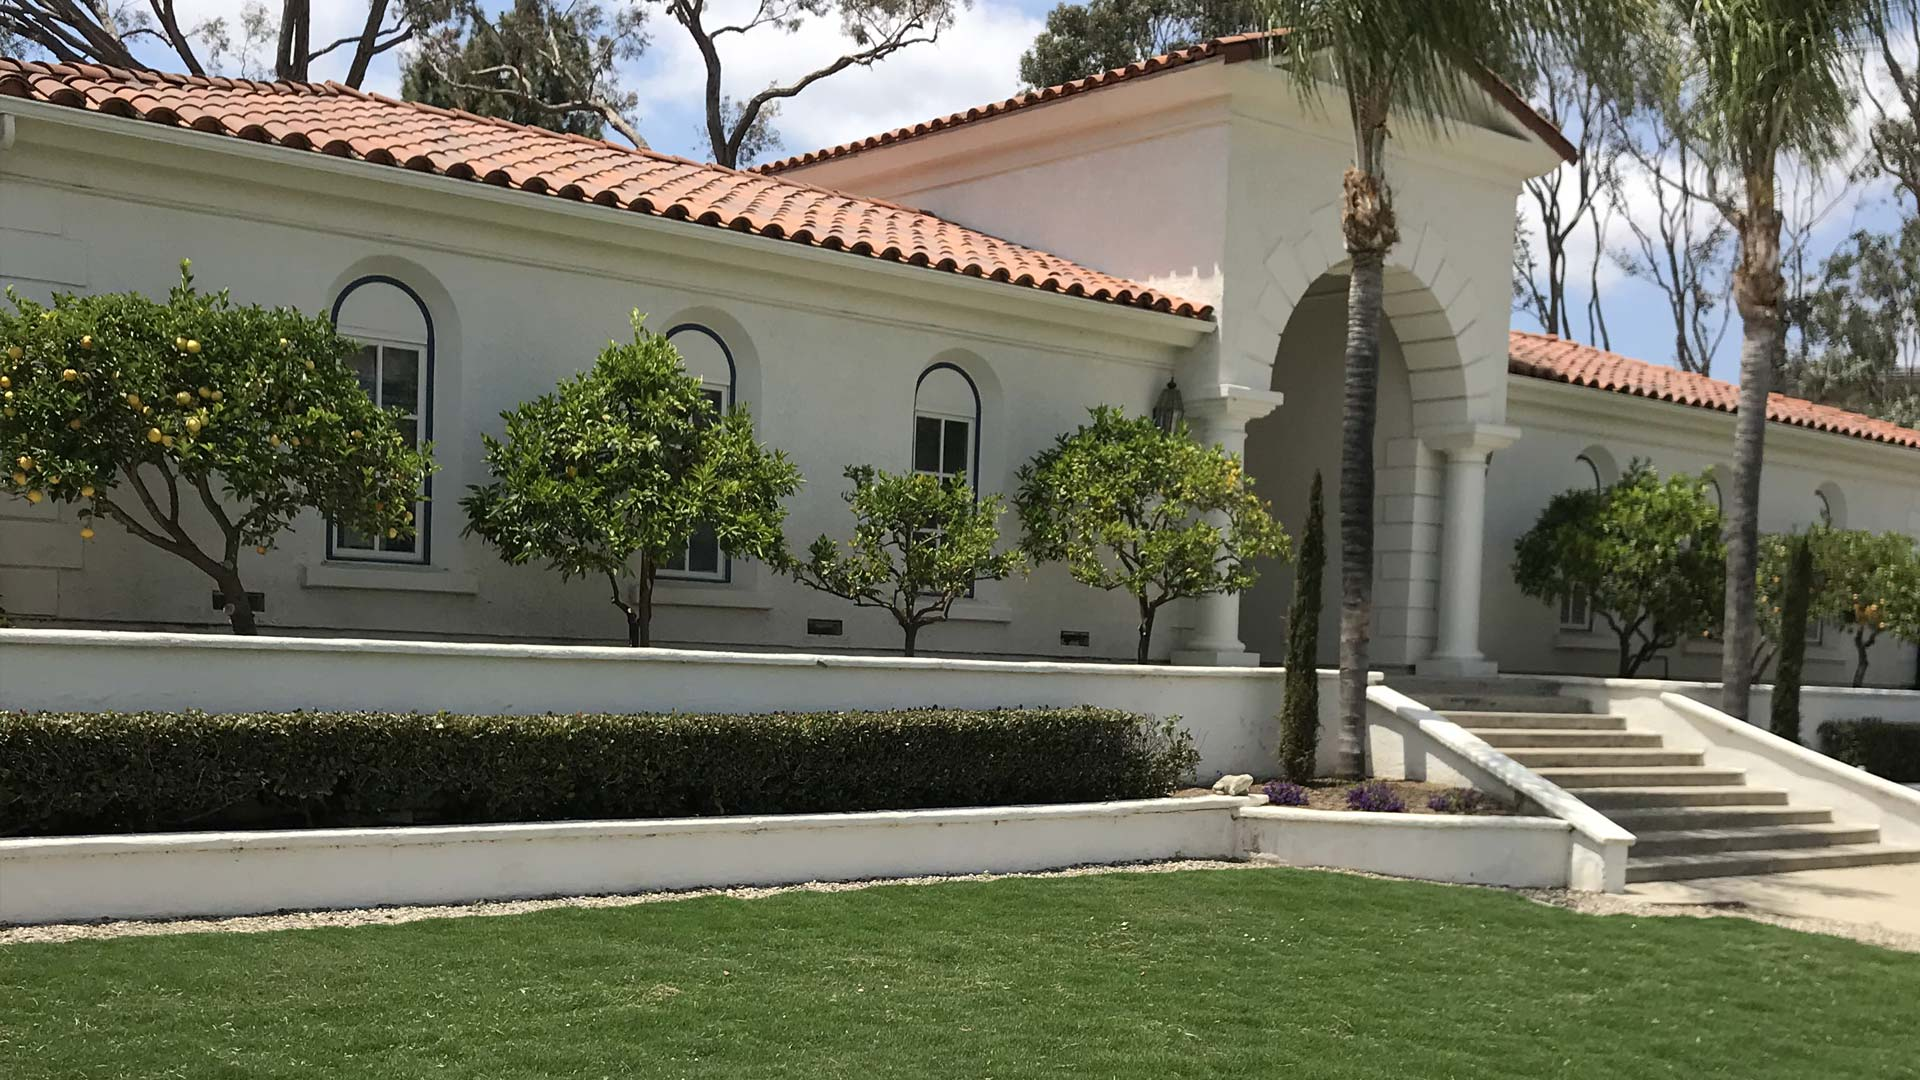 Tree care and landscaping services for a home in Carlsbad, CA.